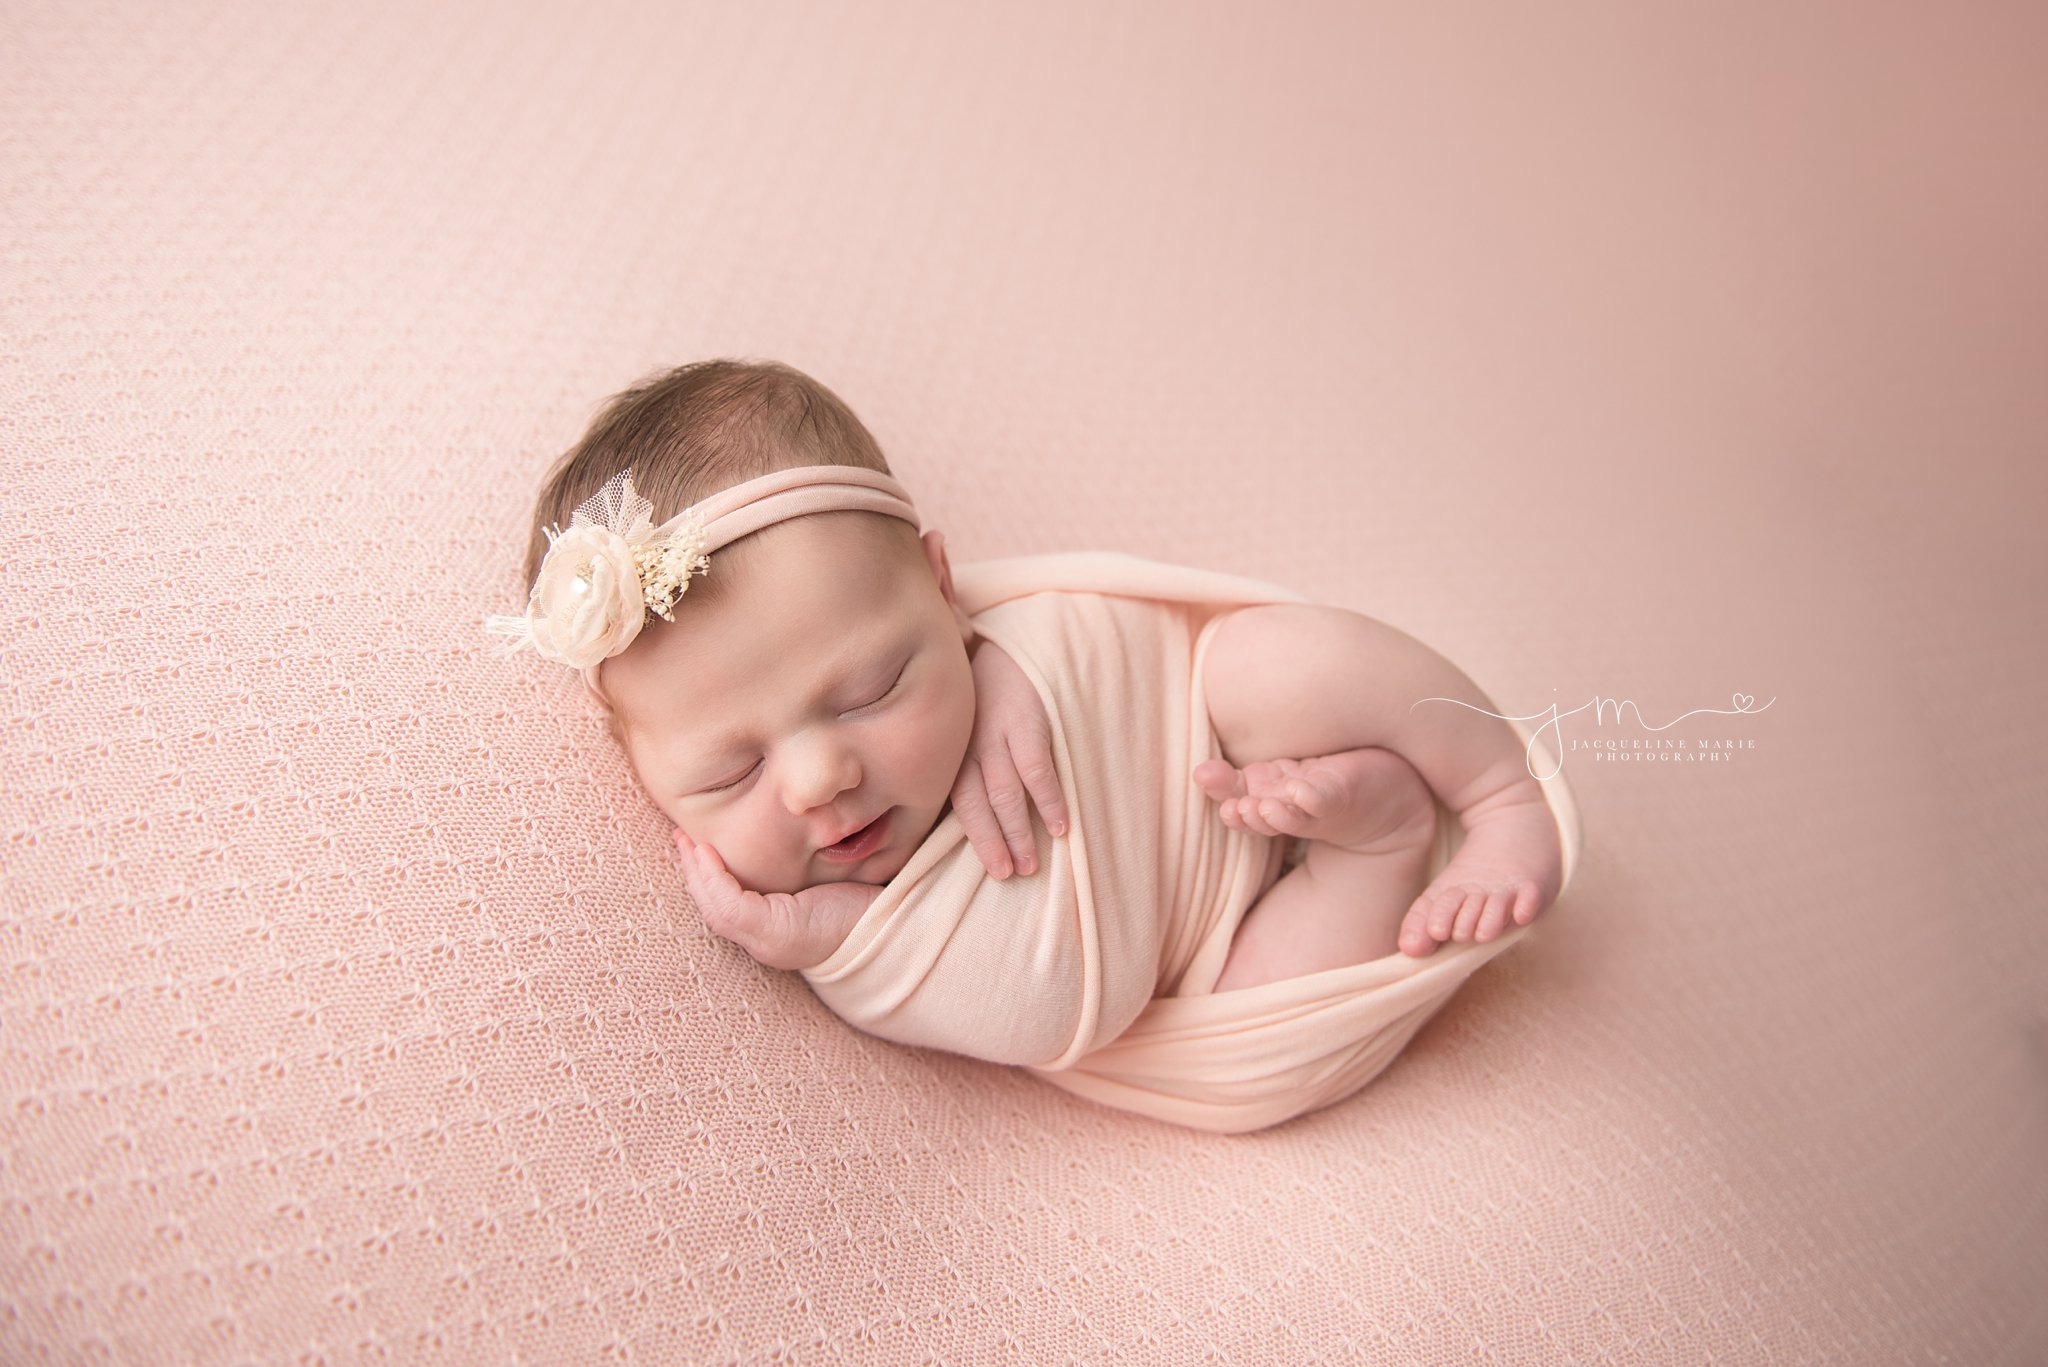 columbus ohio newborn photographer features images of baby girl wrapped in pink swaddle